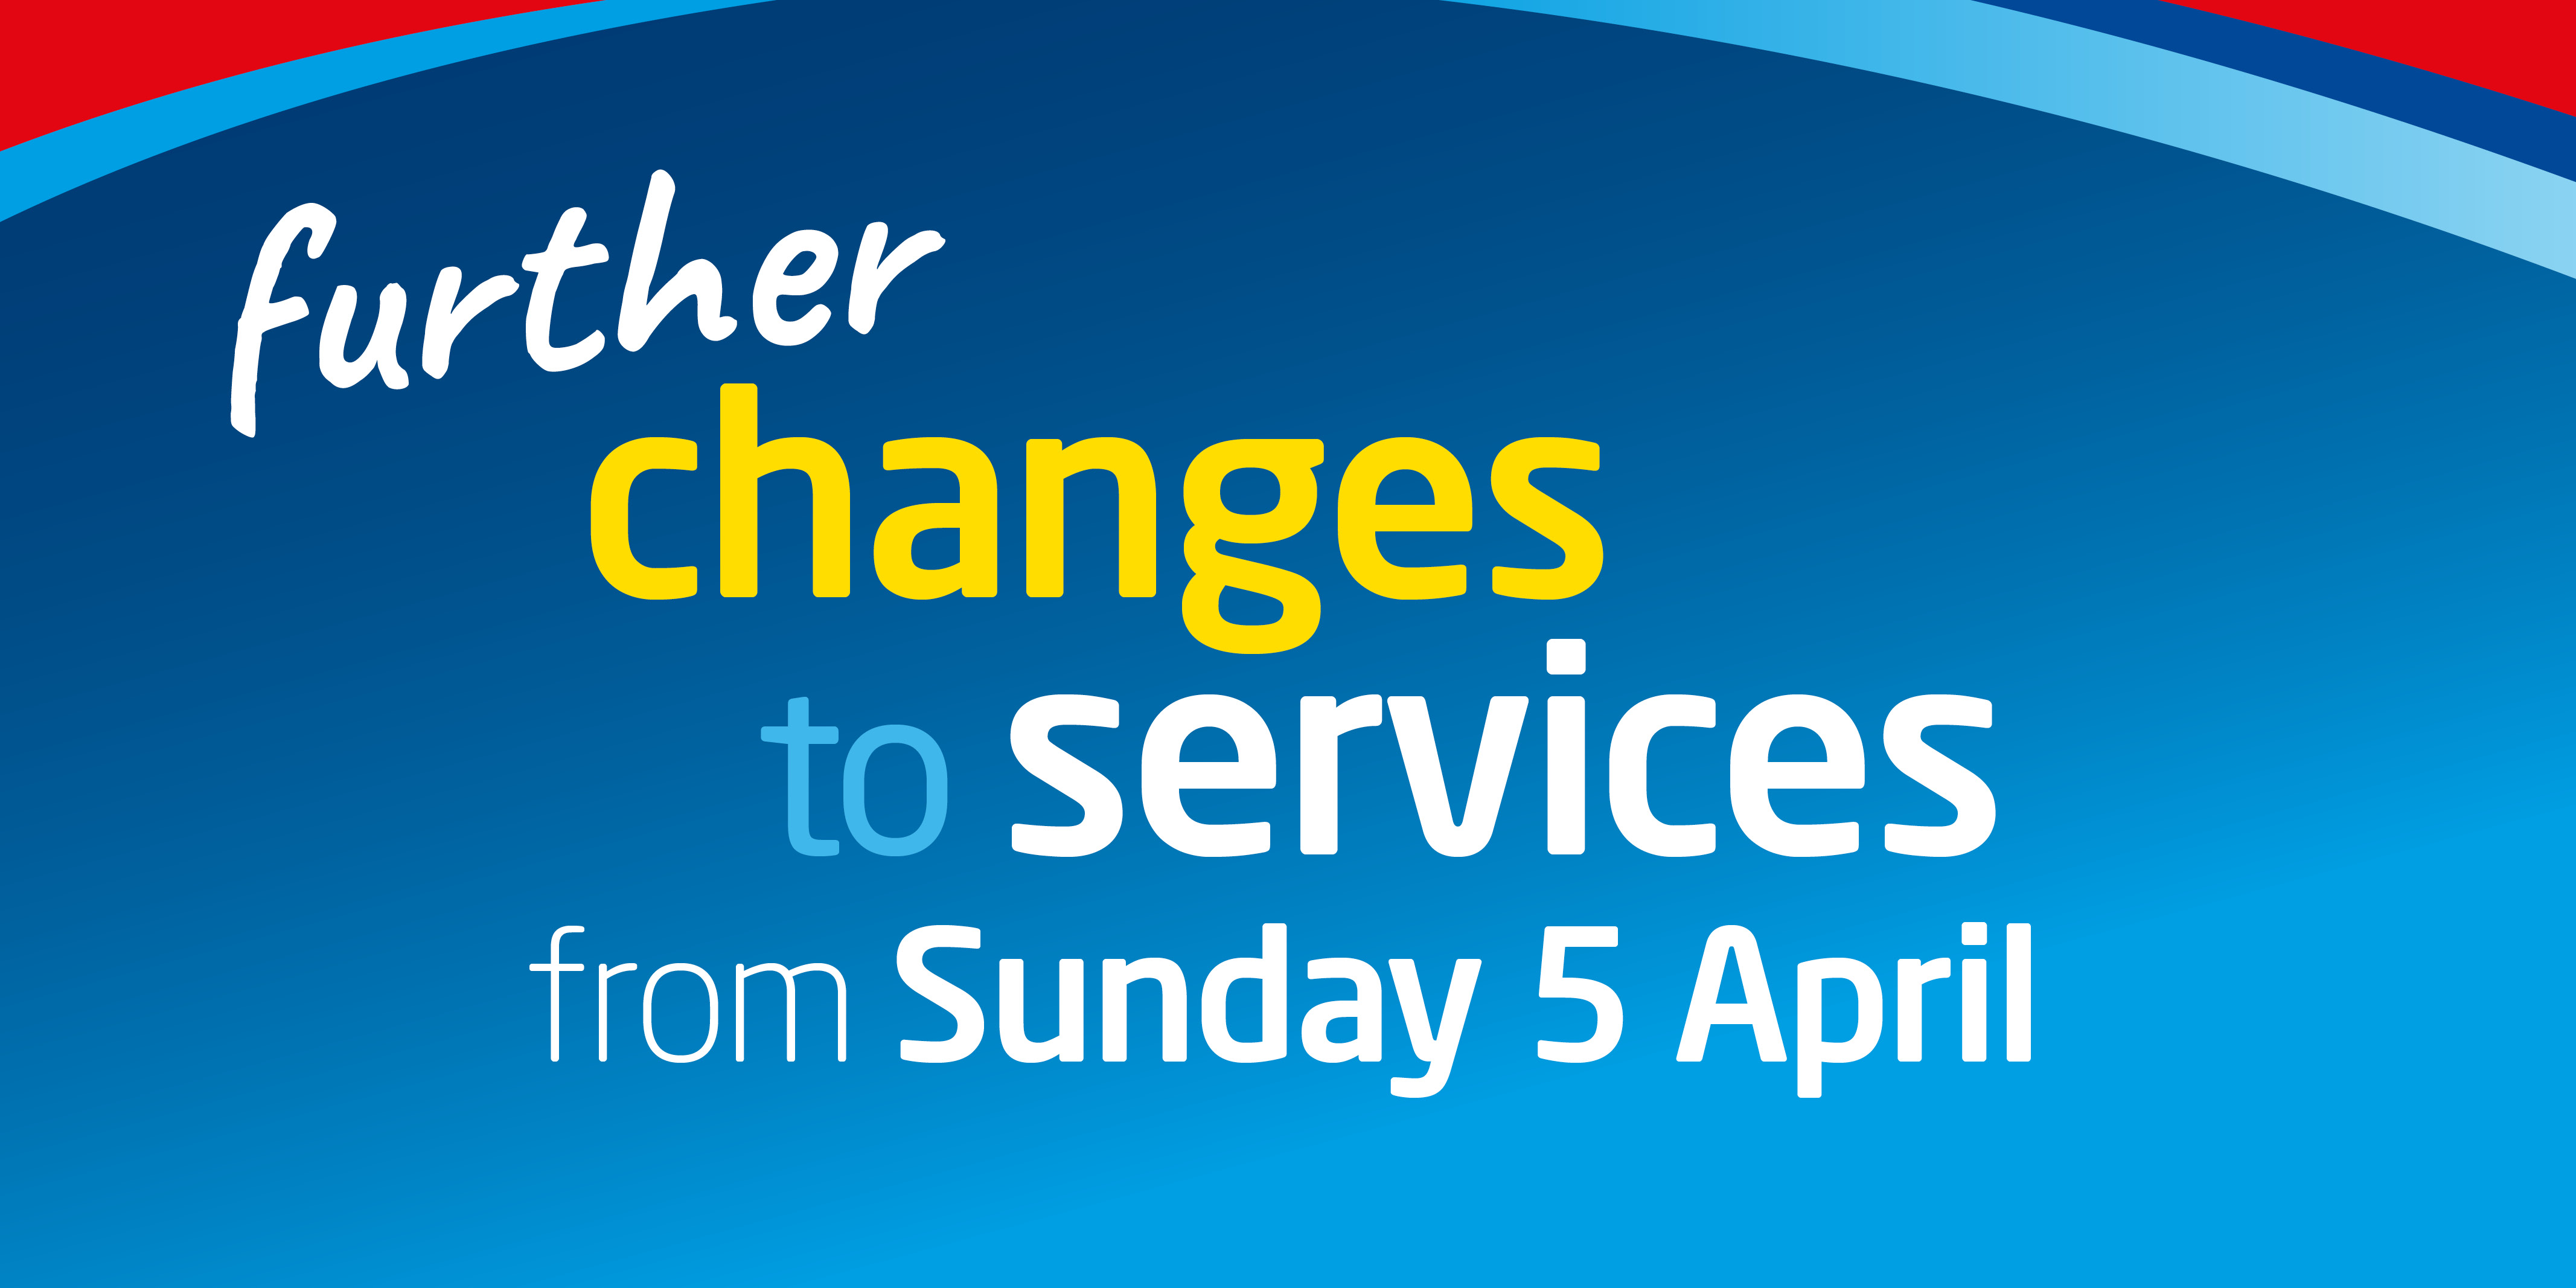 Image reading 'Further changes to services from Sunday 5 April'